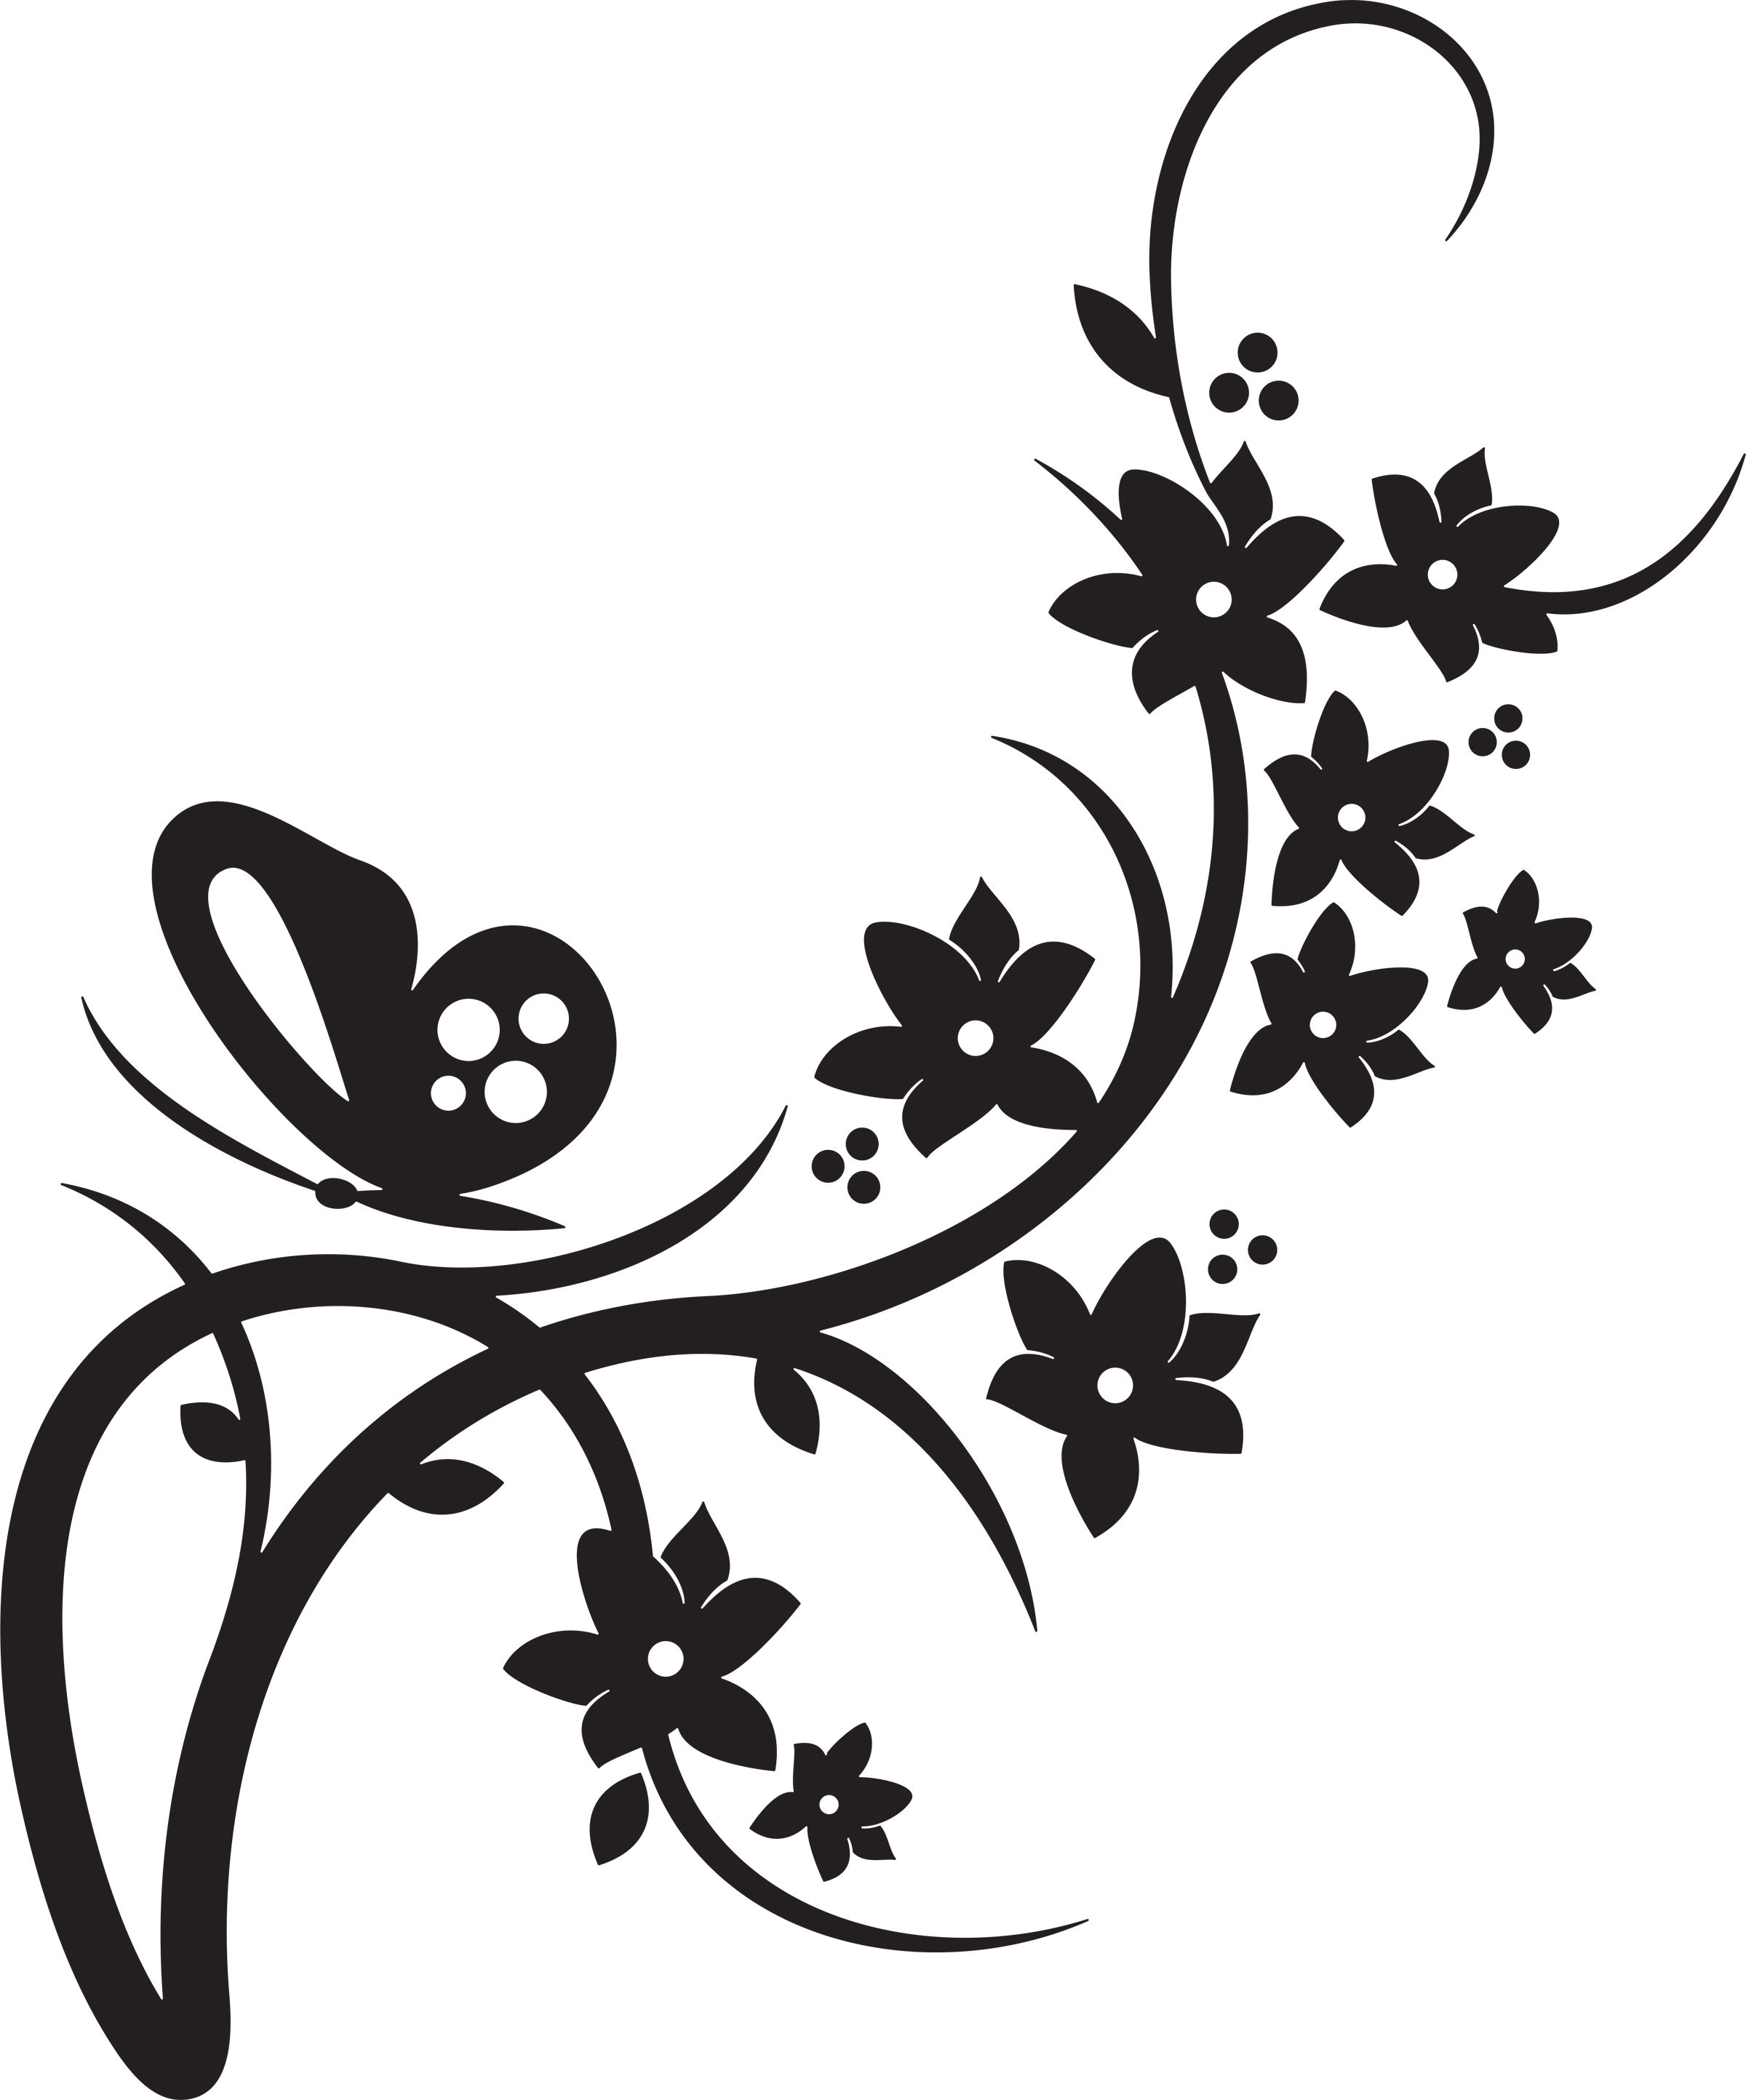 wedding clip art black and white border-wedding clip art black and white border-1